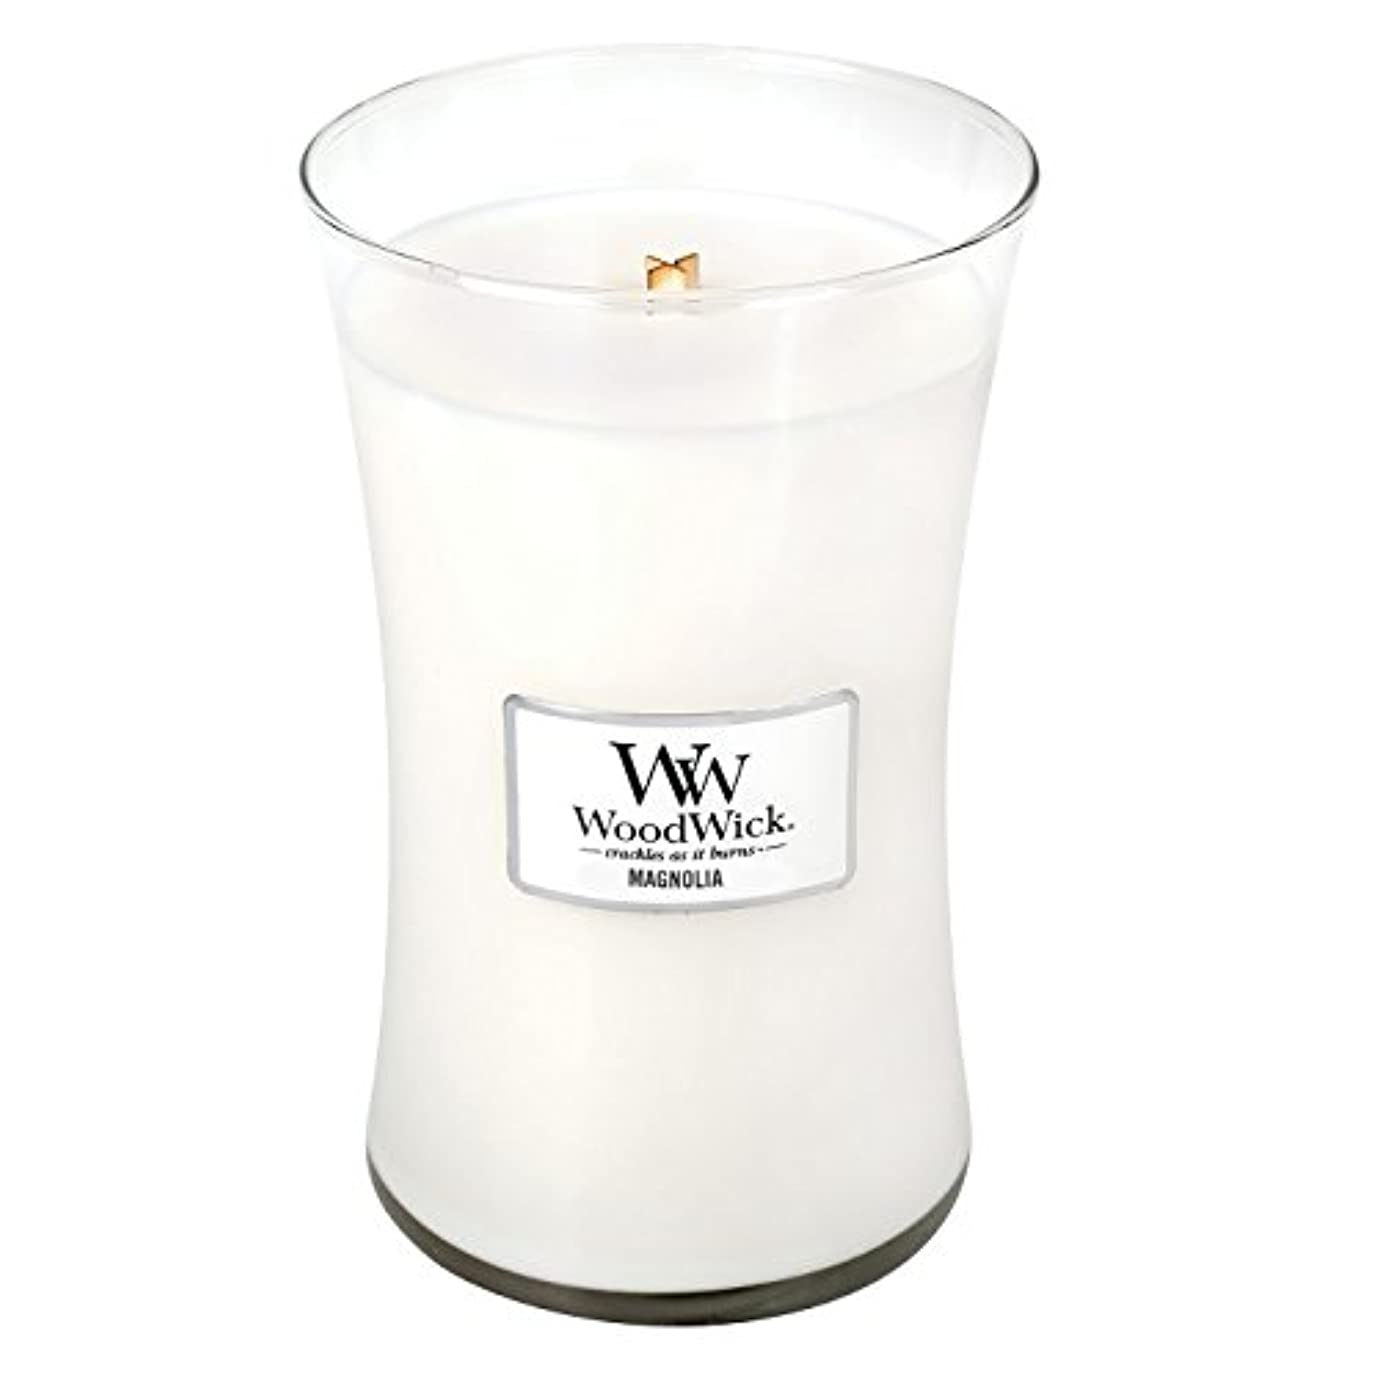 ましい生産的彼らのWoodwick Magnolia , Highly Scented Candle、クラシック砂時計Jar , Large 7-inch、21.5 Oz